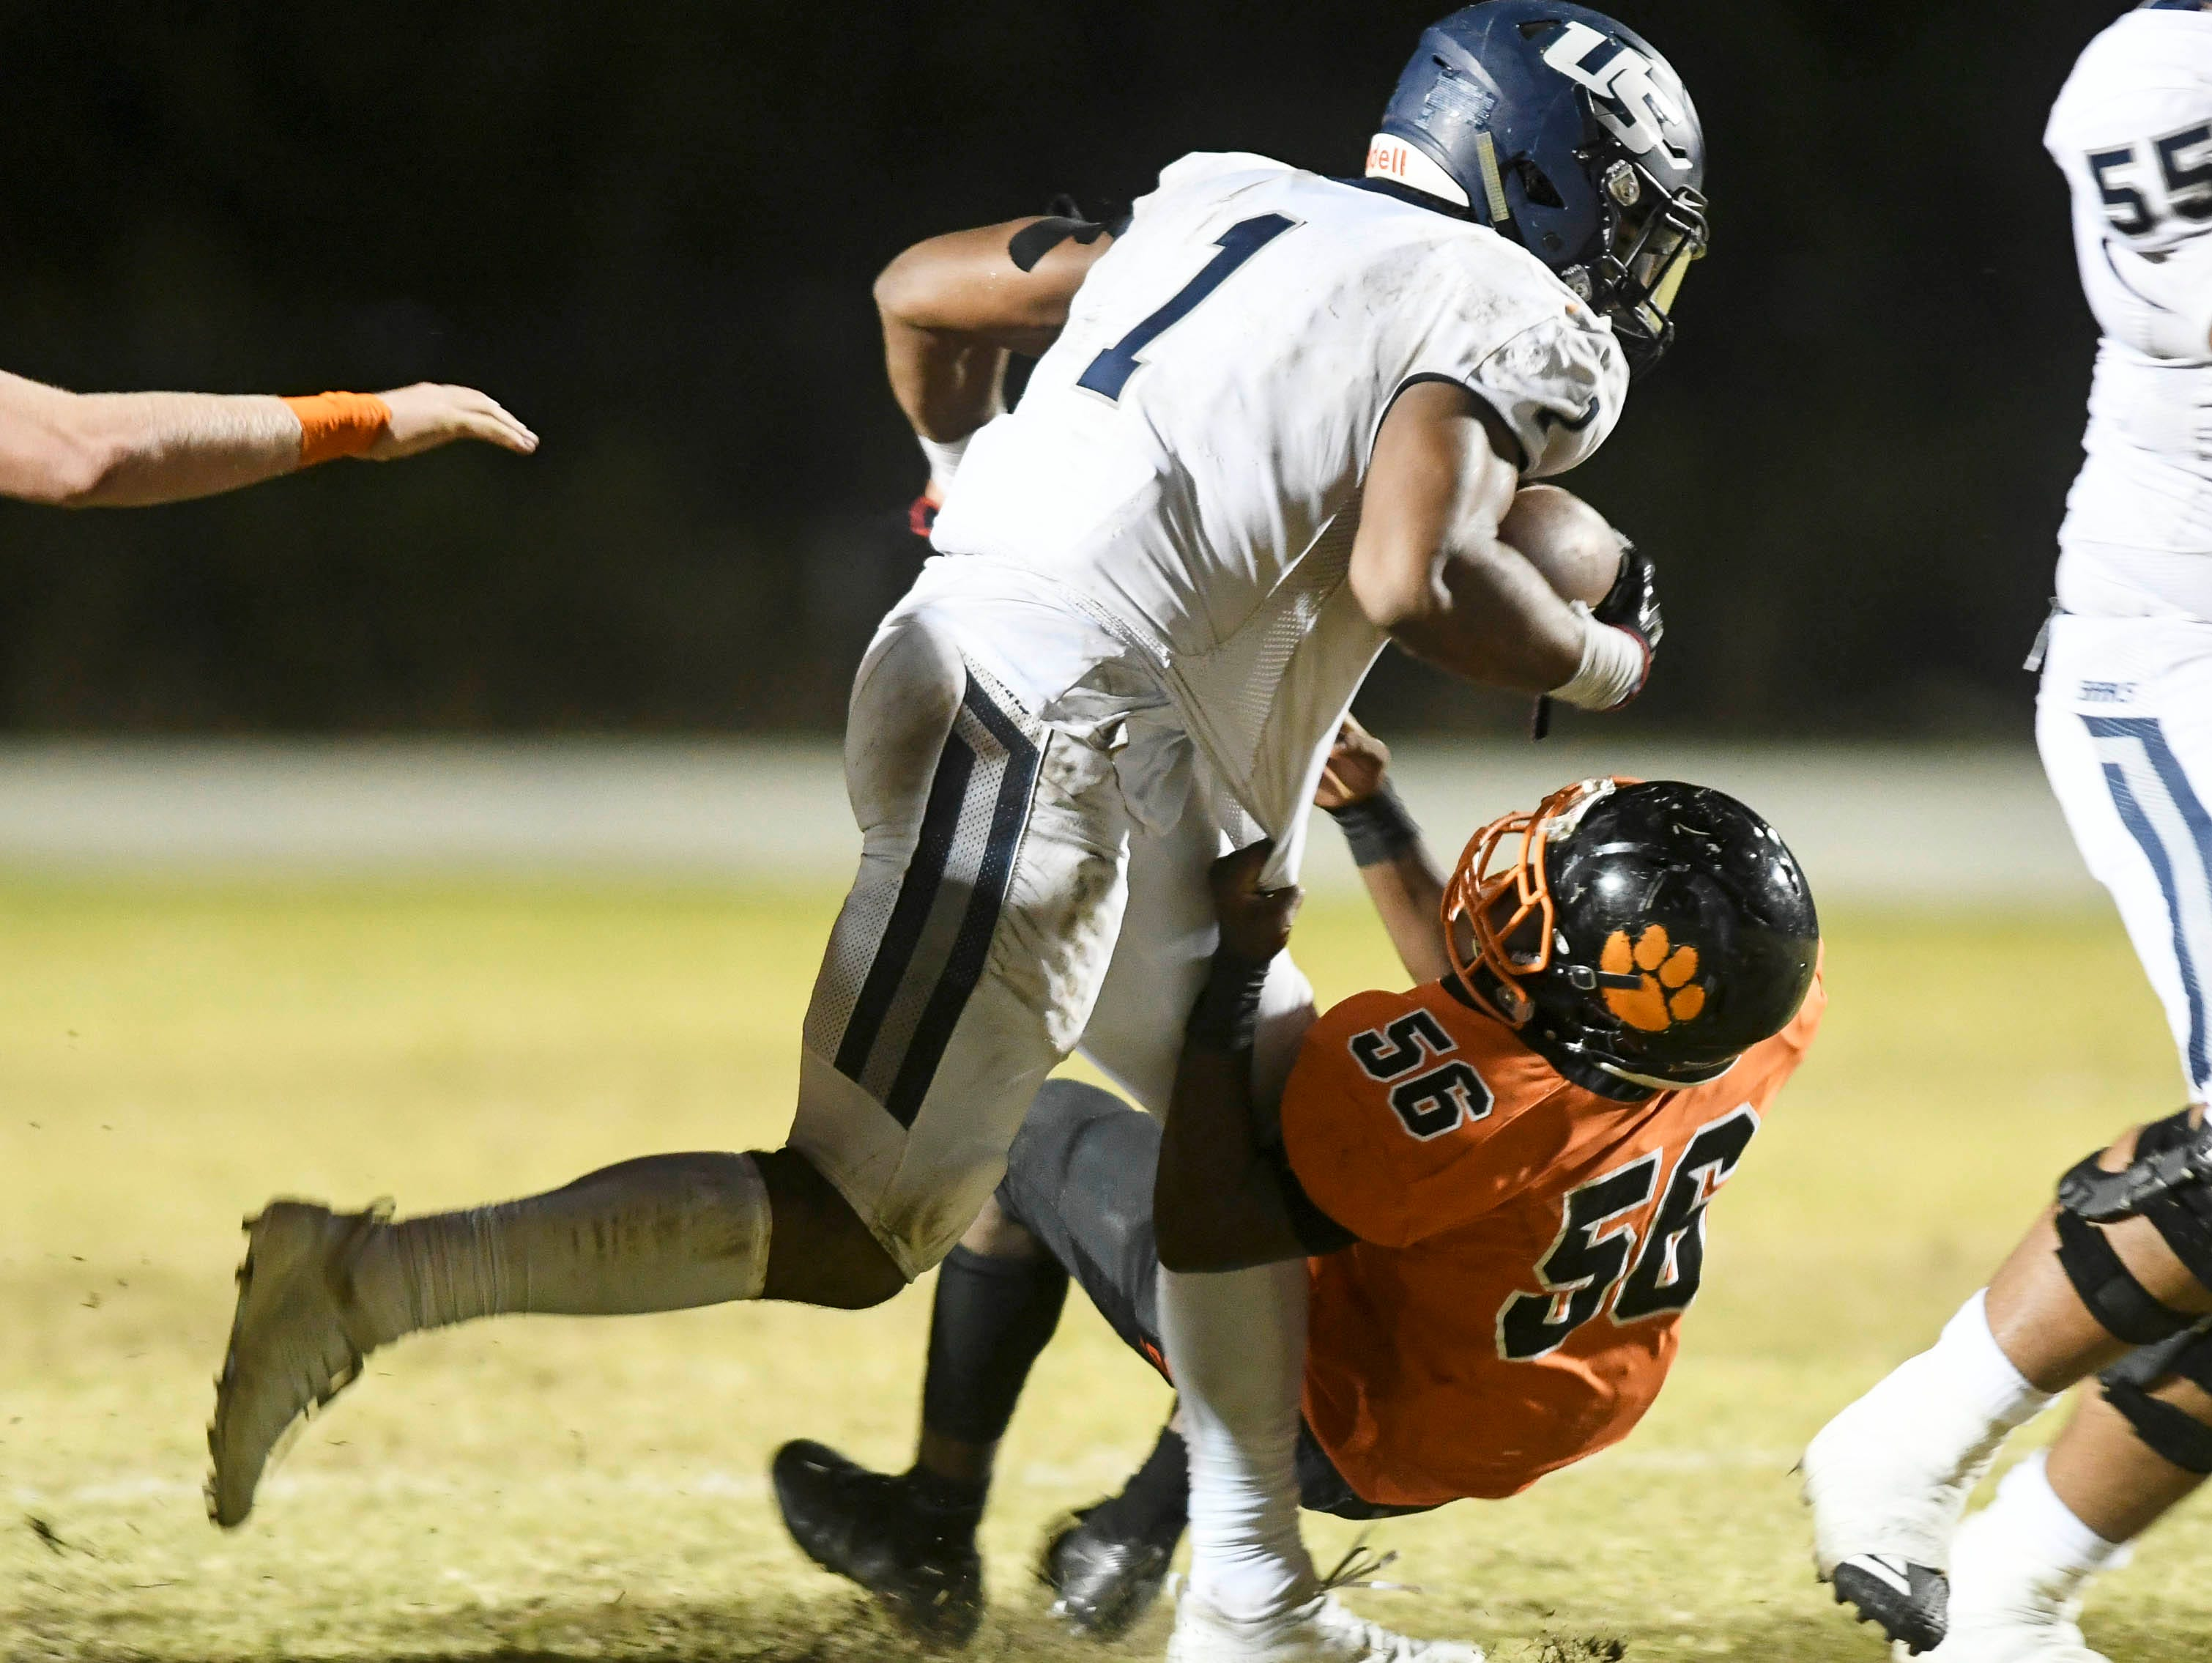 AJ Williams of Cocoa brings down University ballcarrier Kenny Mcintosh during Friday's Class 4A state semifinal.